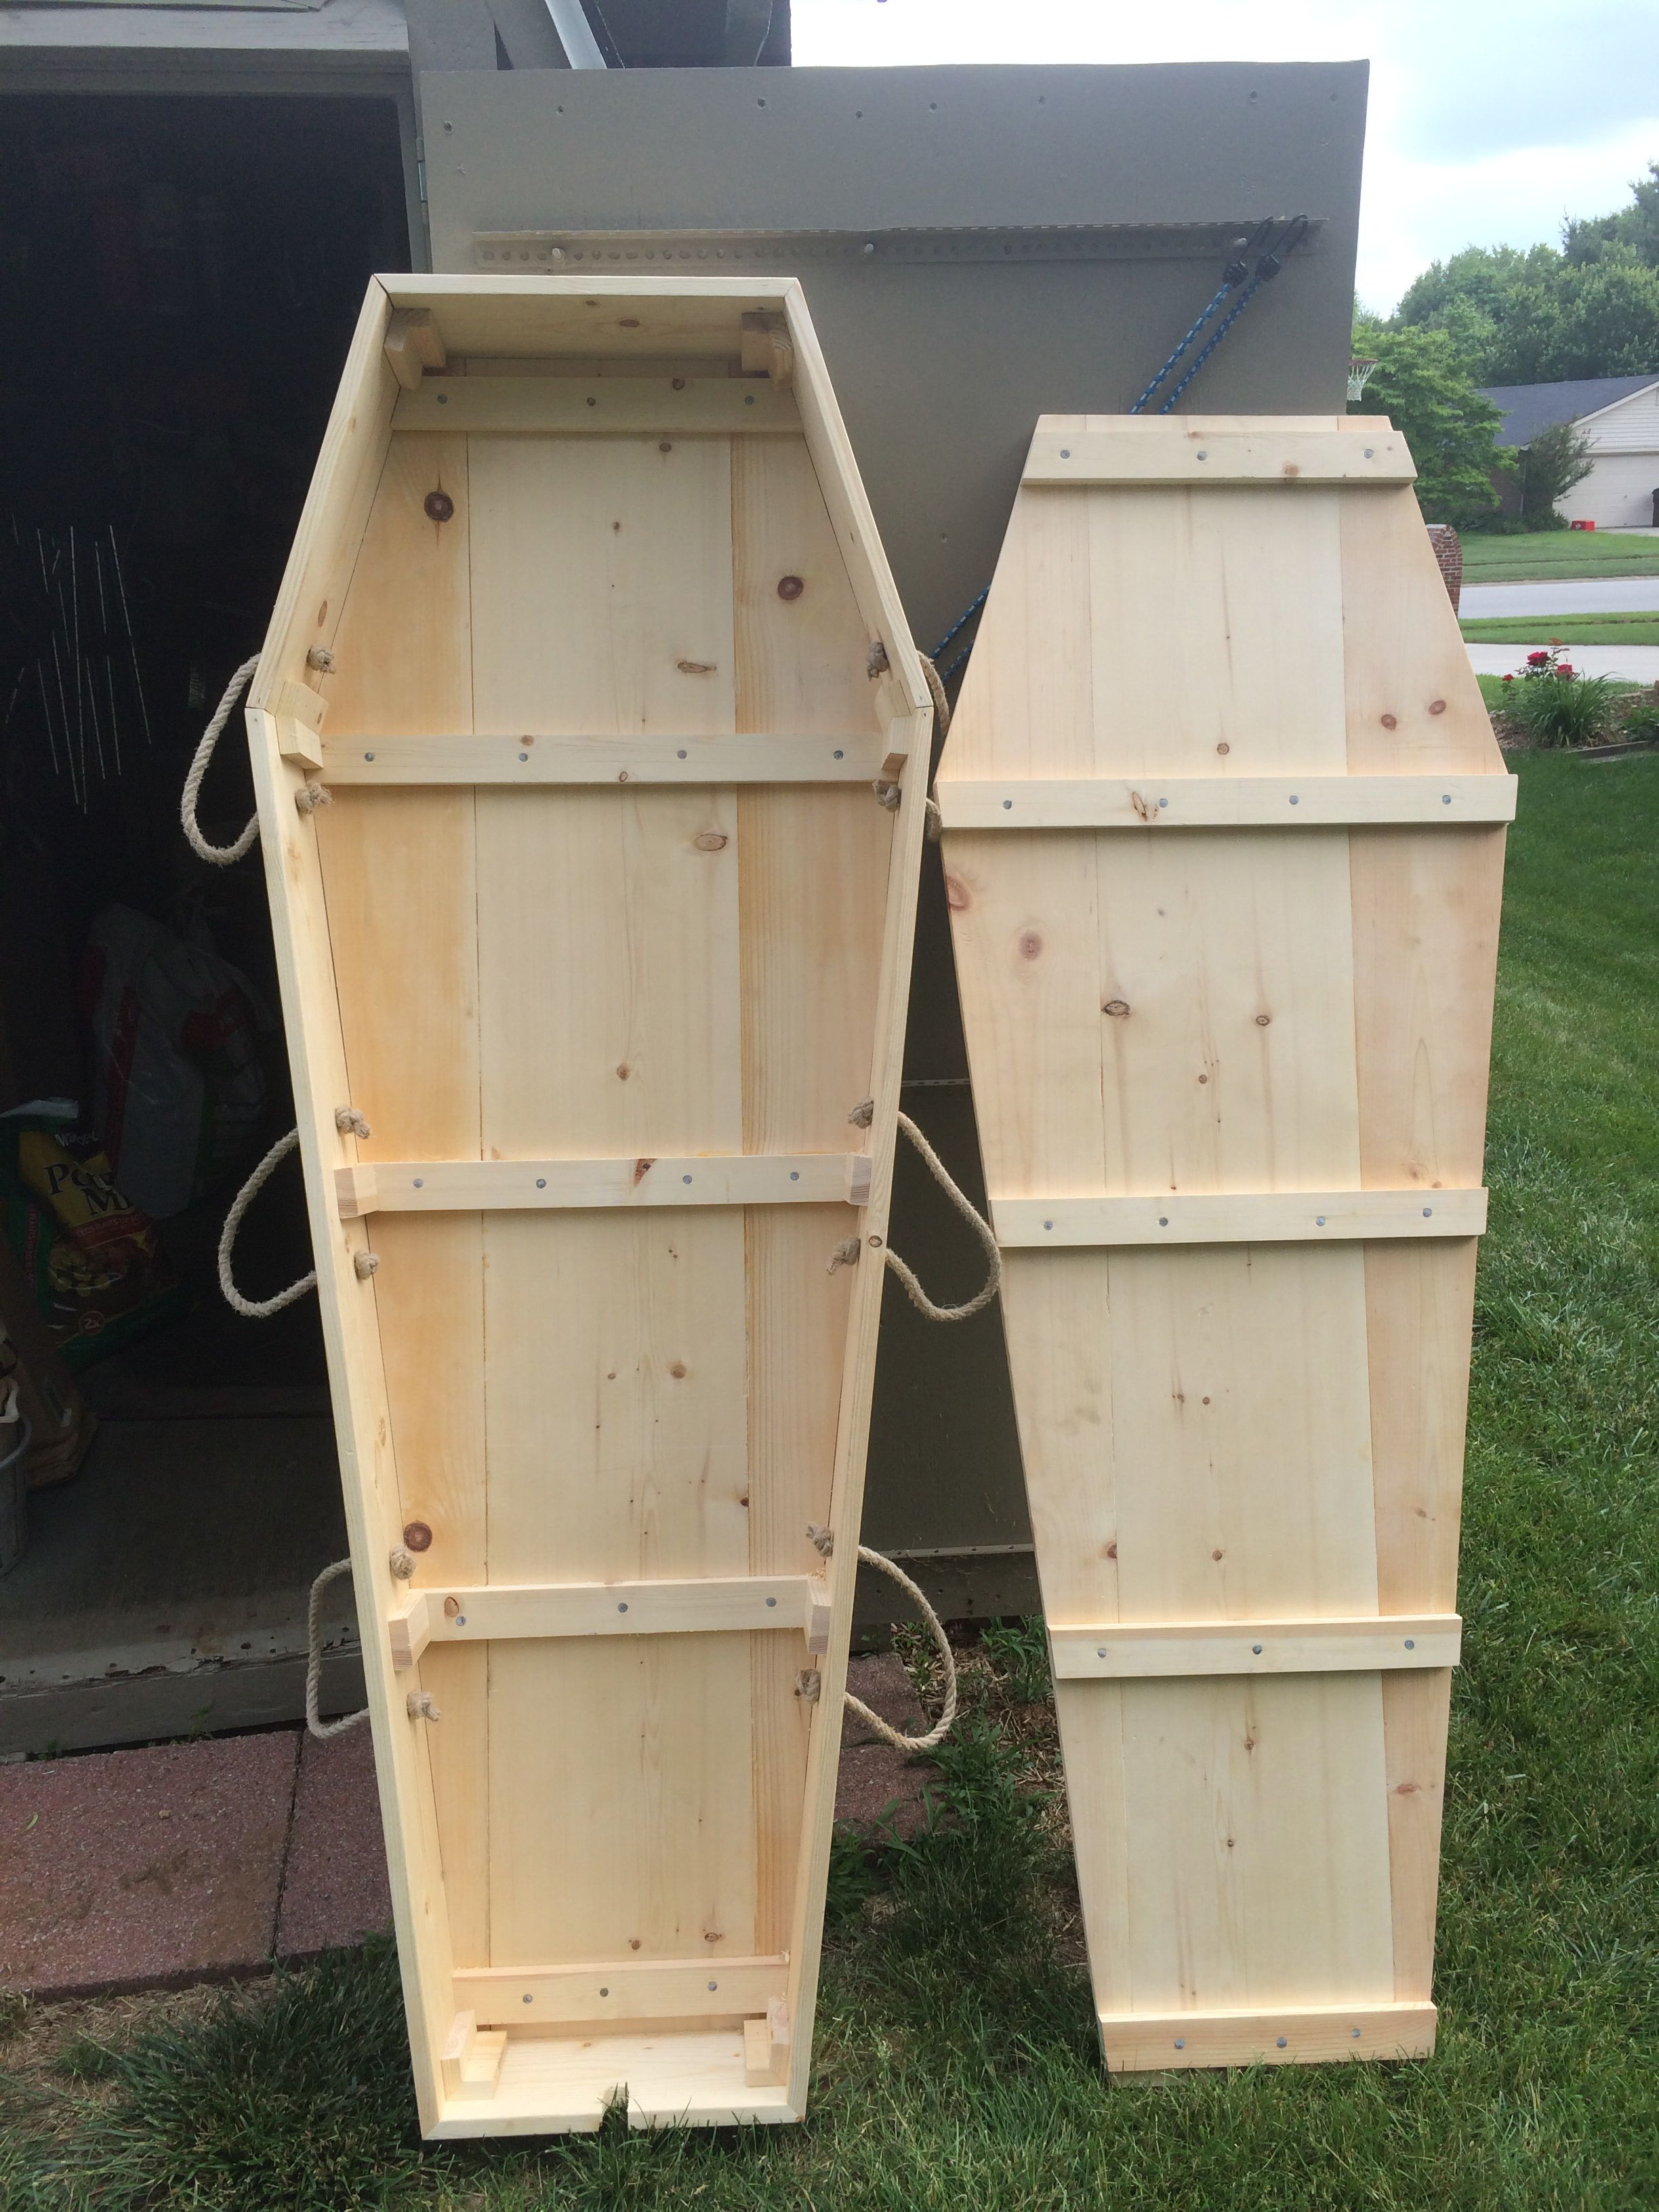 Pine Box Coffin Gag Gift Diy Halloween Projects